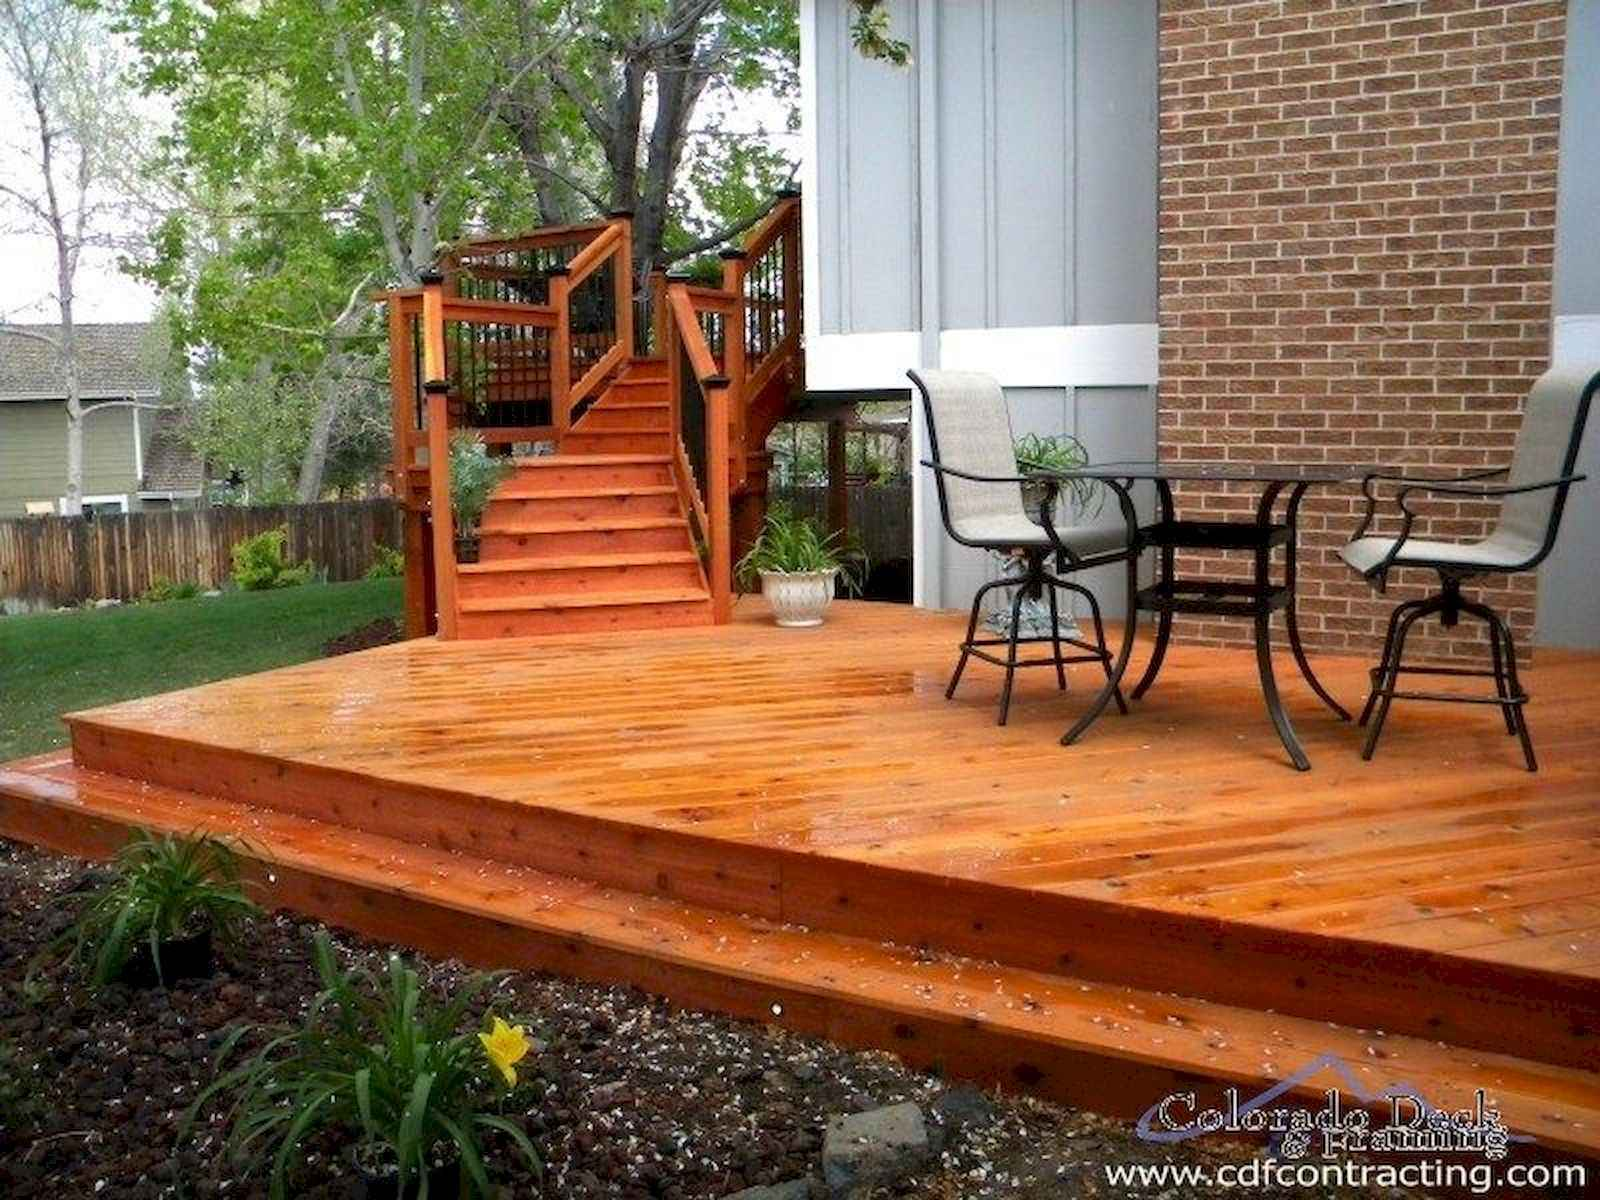 80 DIY Summery Backyard Projects Ideas Make Your Summer Awesome (13)